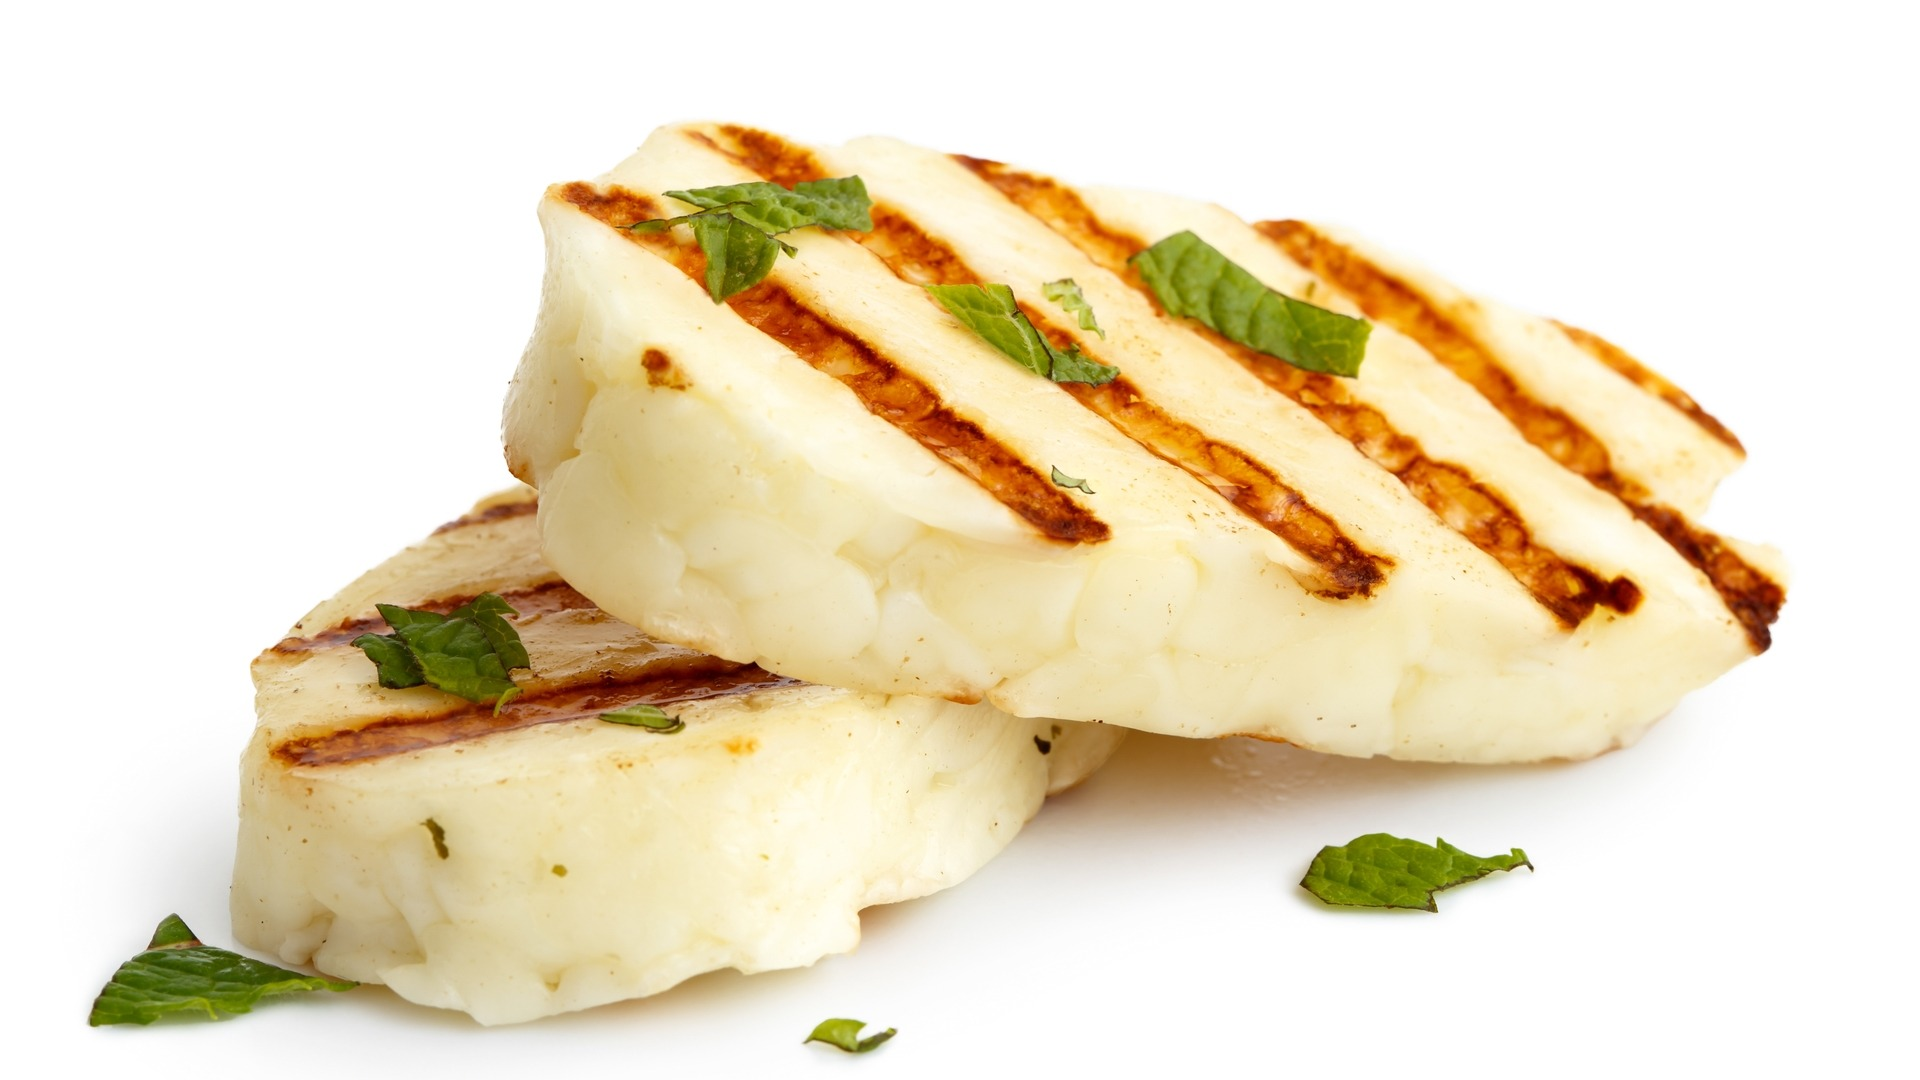 halloumi, cheese, grilling, cyprus